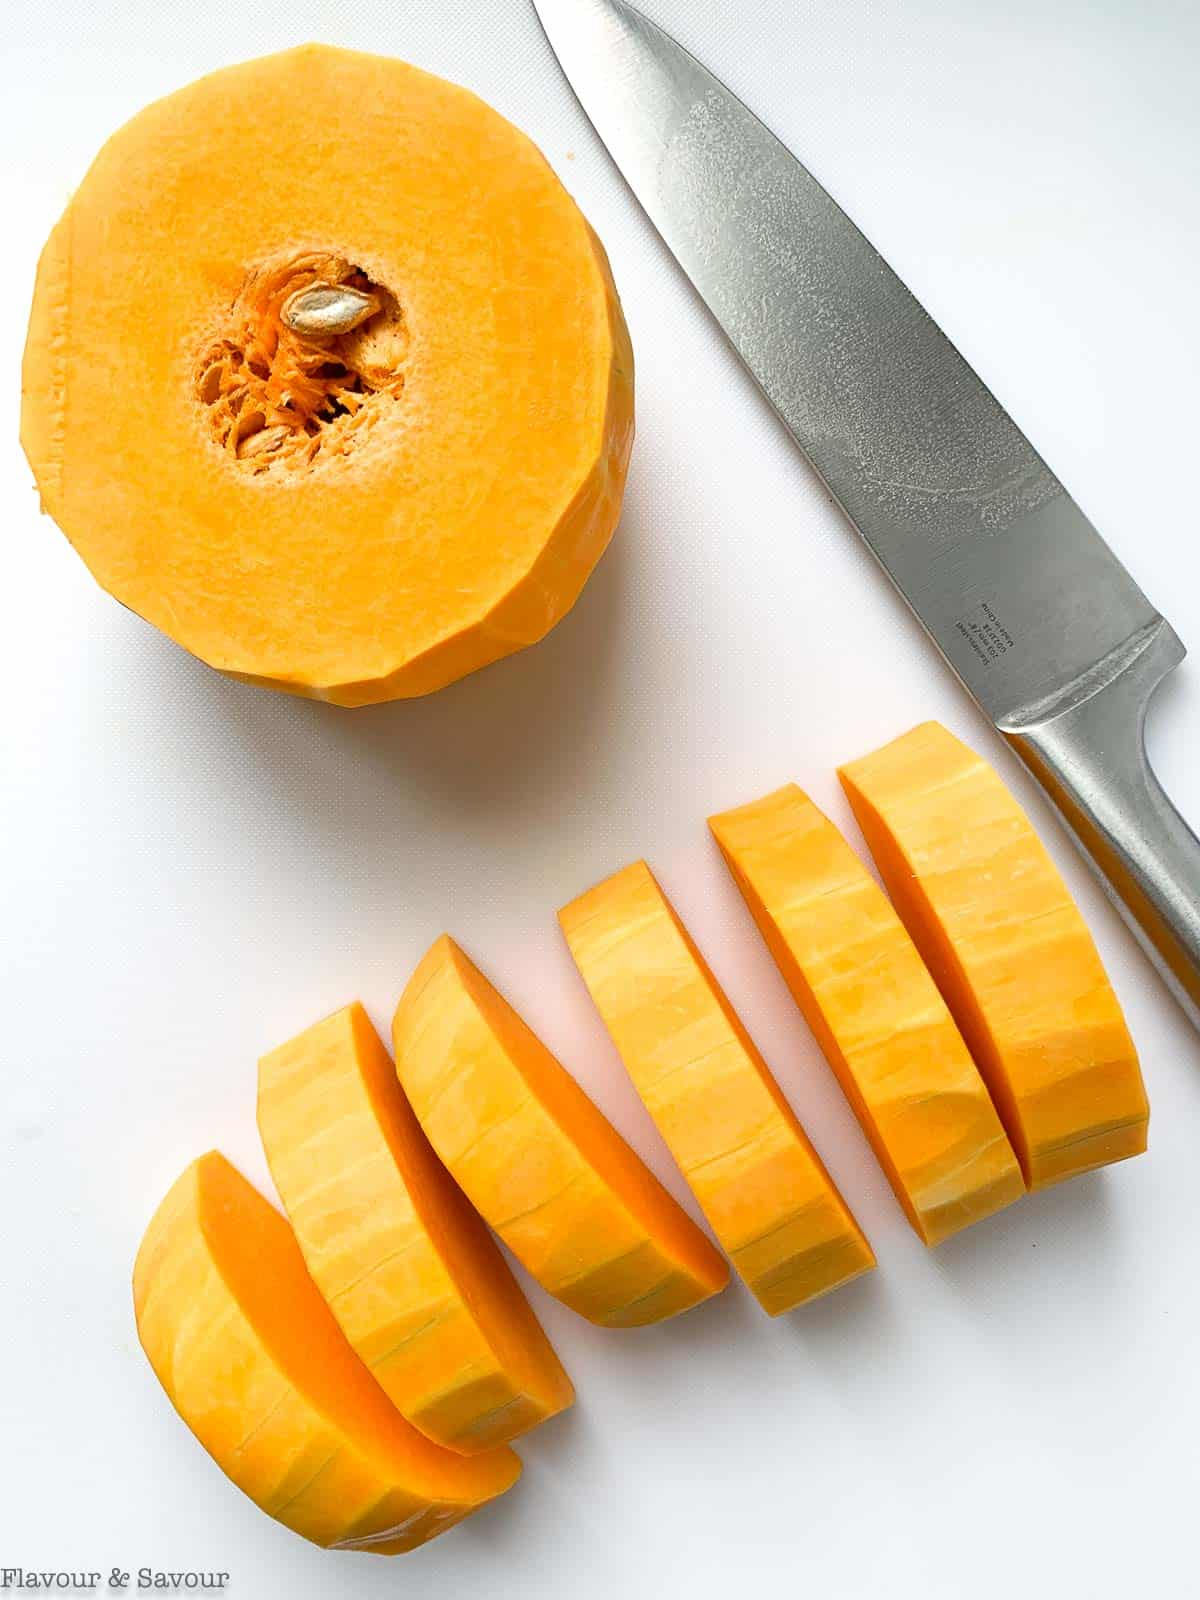 butternut squash sliced into rounds and half moons